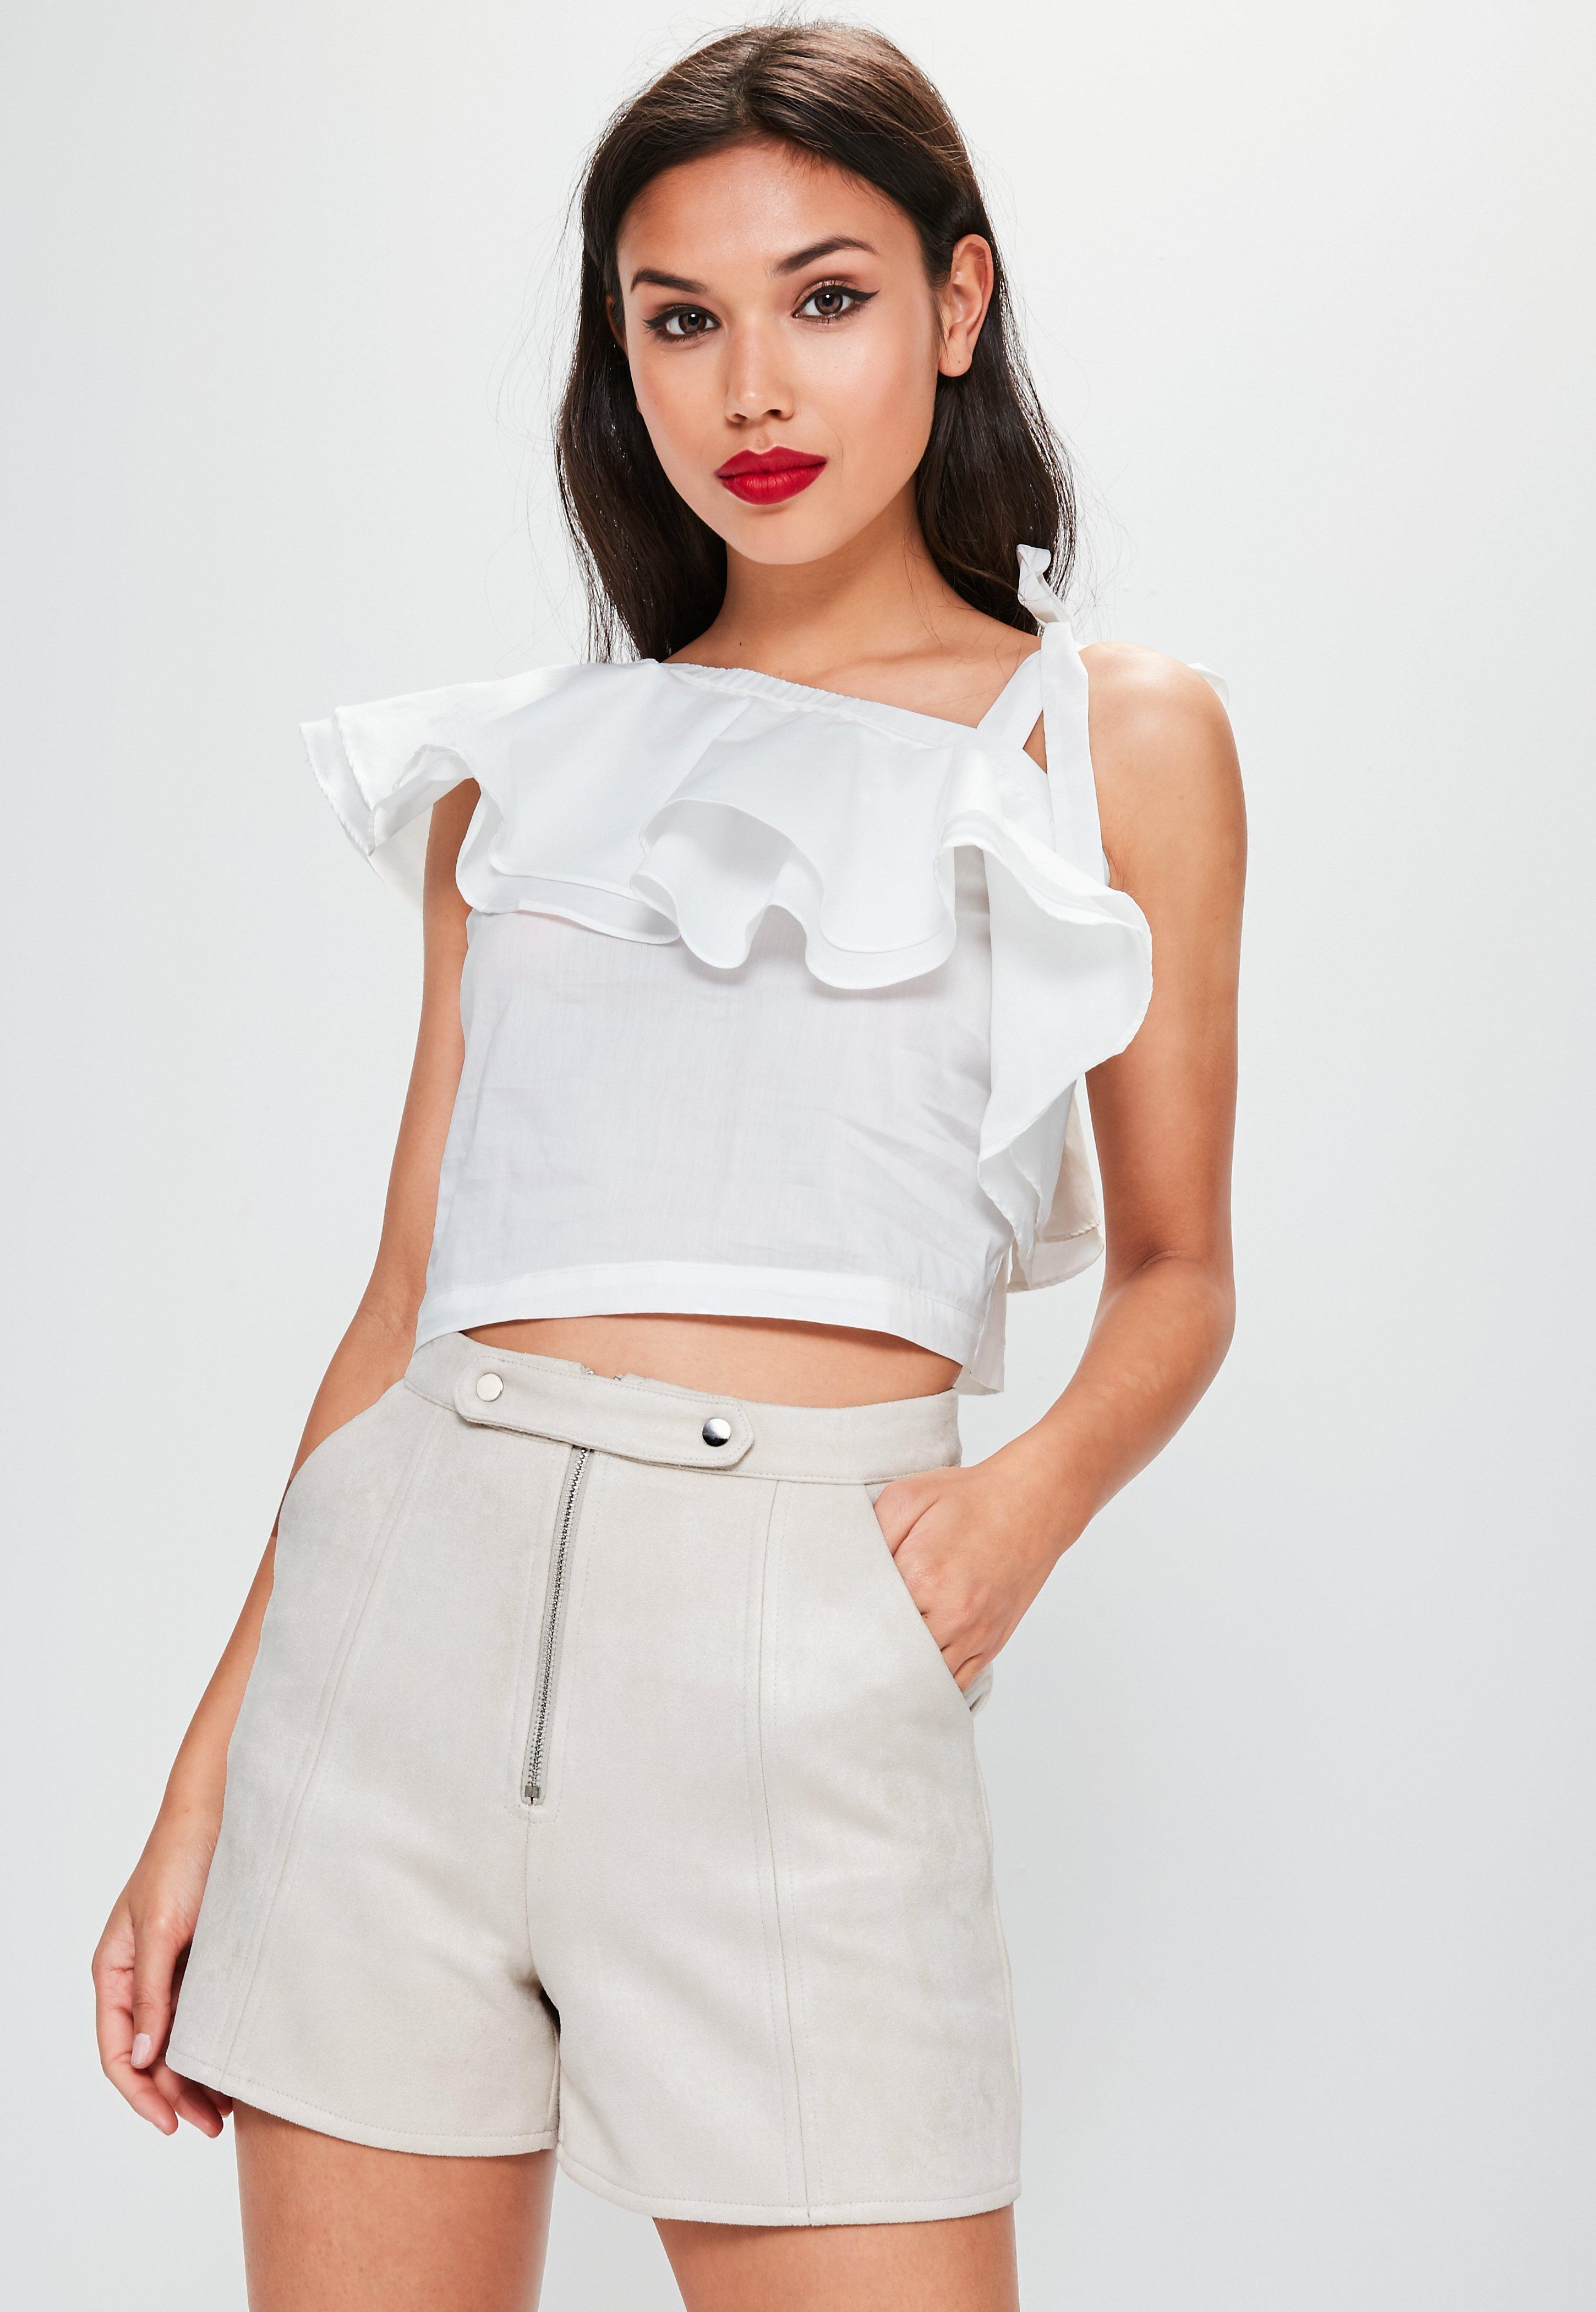 81084b9d8fc Missguided White Frill One Shoulder Crop Top in White - Lyst